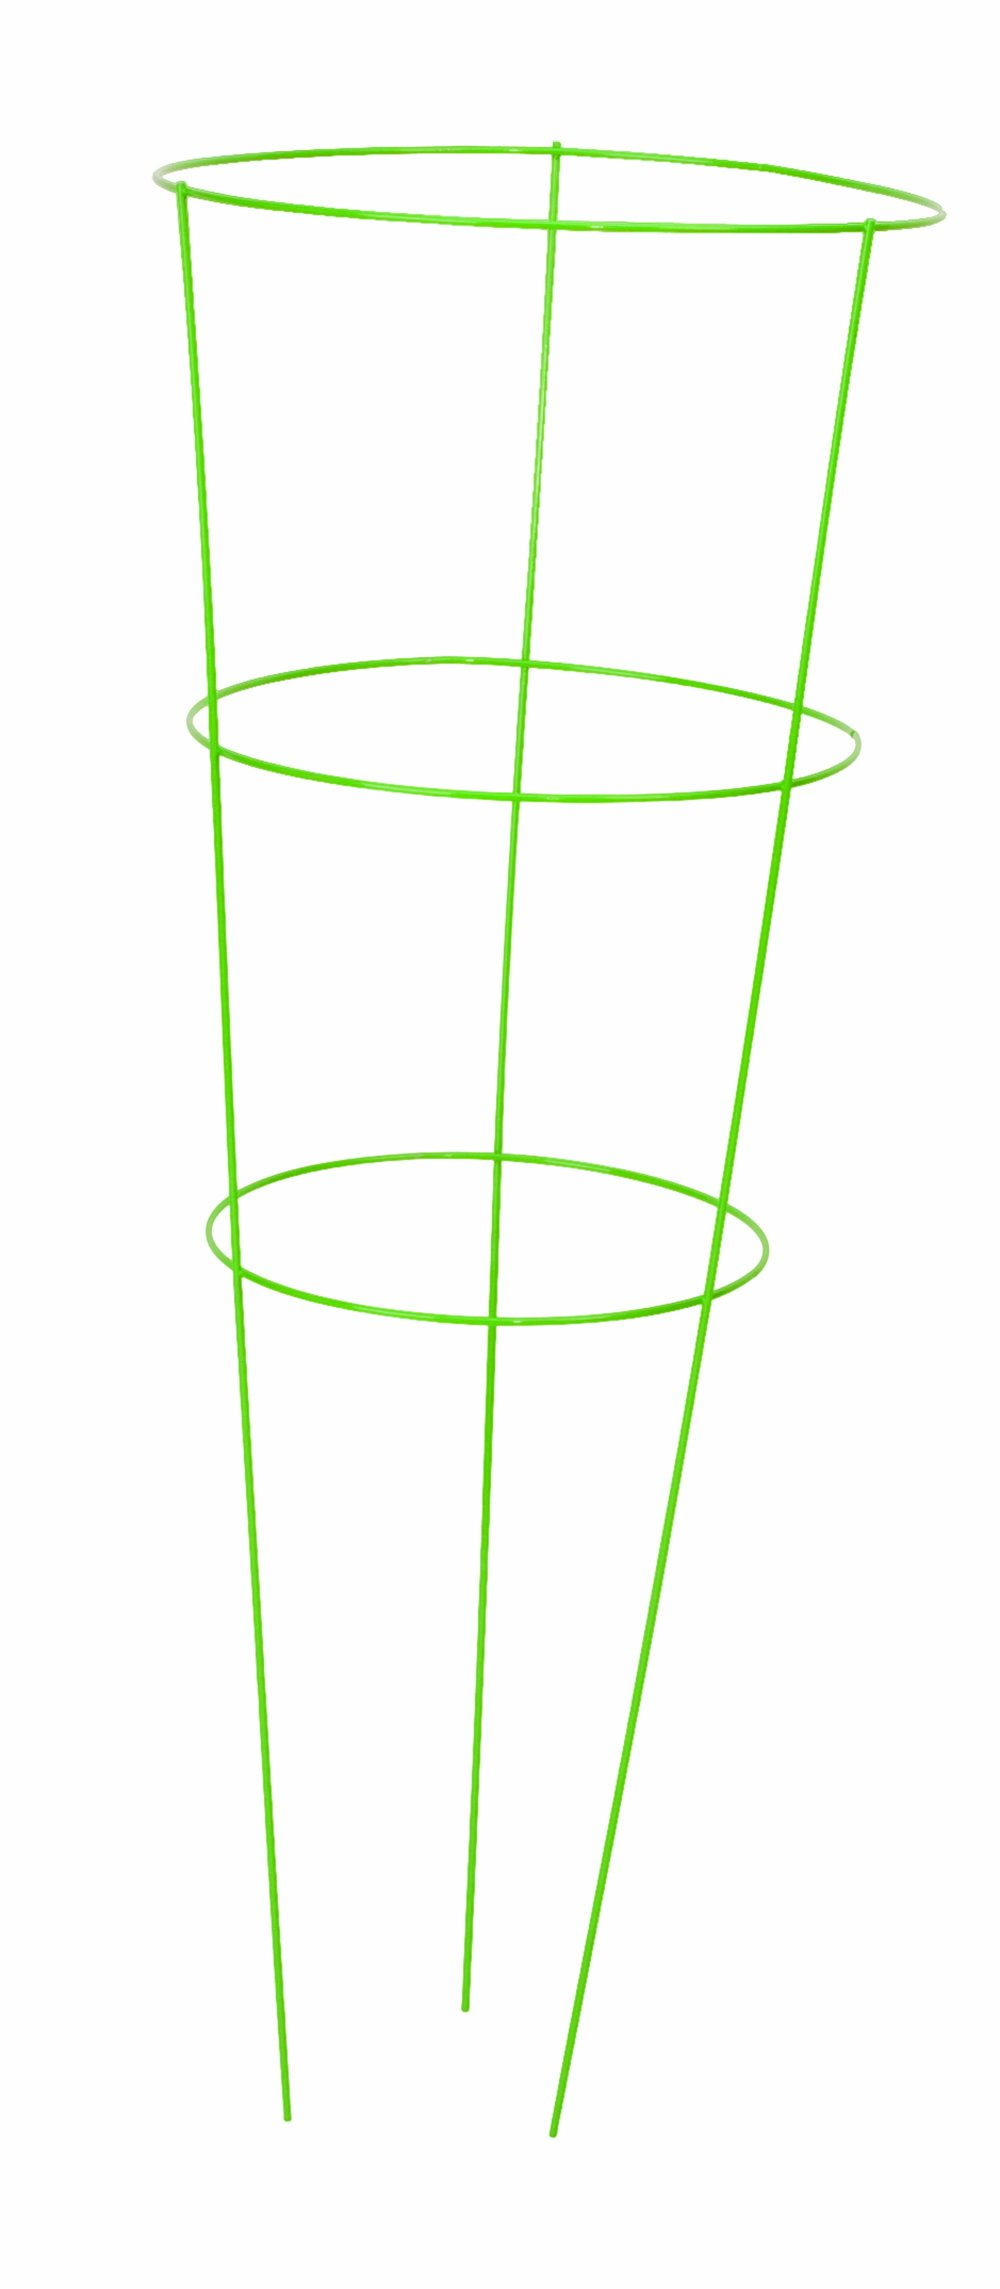 Panacea Products 89772 Heavy Duty Tomato and Plant Support Cage, Light Green, (Pack of 5)